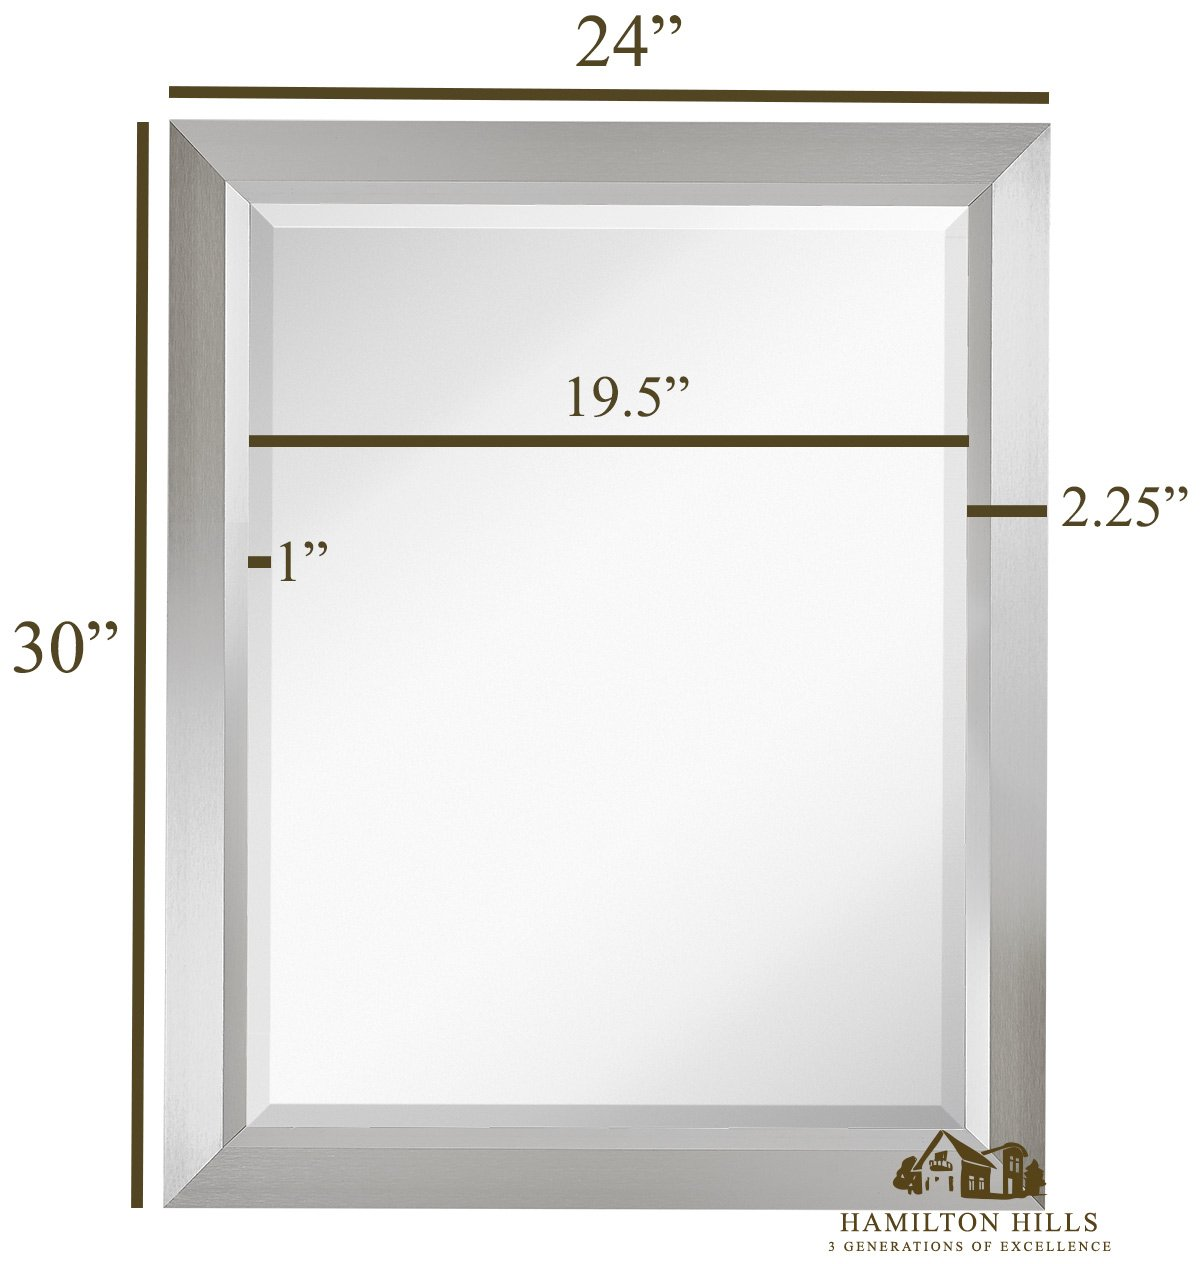 Premium Rectangular Brushed Aluminum Wall Mirror   Contemporary Metal Frame Silver Backed Mirrored Glass   Vanity, Bedroom or Bathroom   Rectangle Hangs Horizontal or Vertical (24'' x 30'') by Hamilton Hills (Image #2)